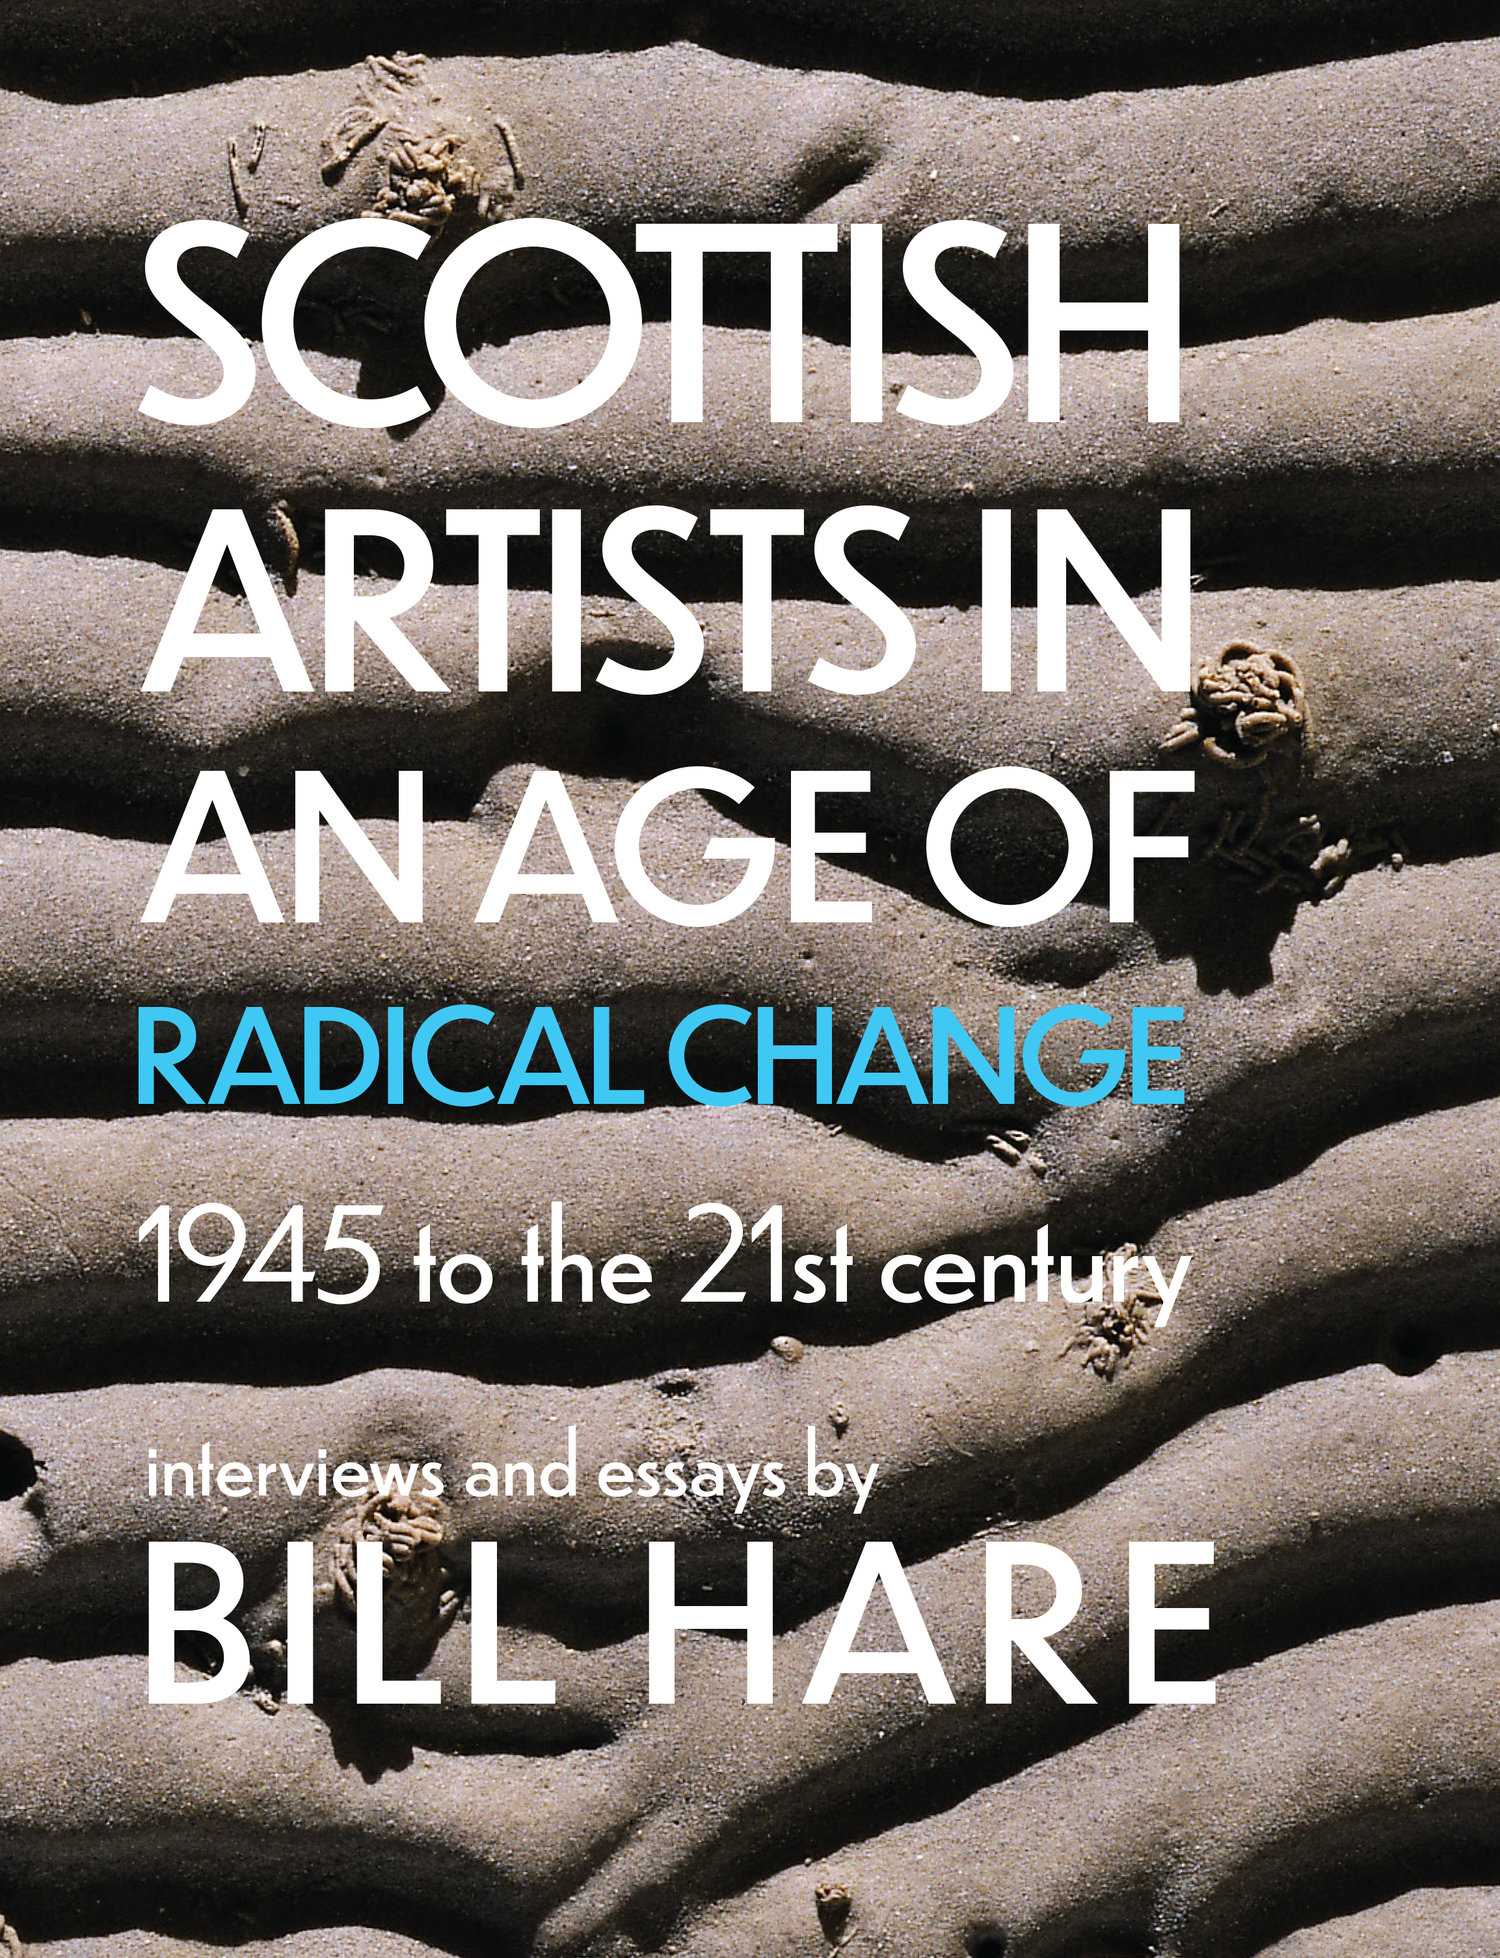 Scottish+Artists+in+an+Age+of+Radical+Change+9781912147915+Bill+Hare+Luath+Press.jpg